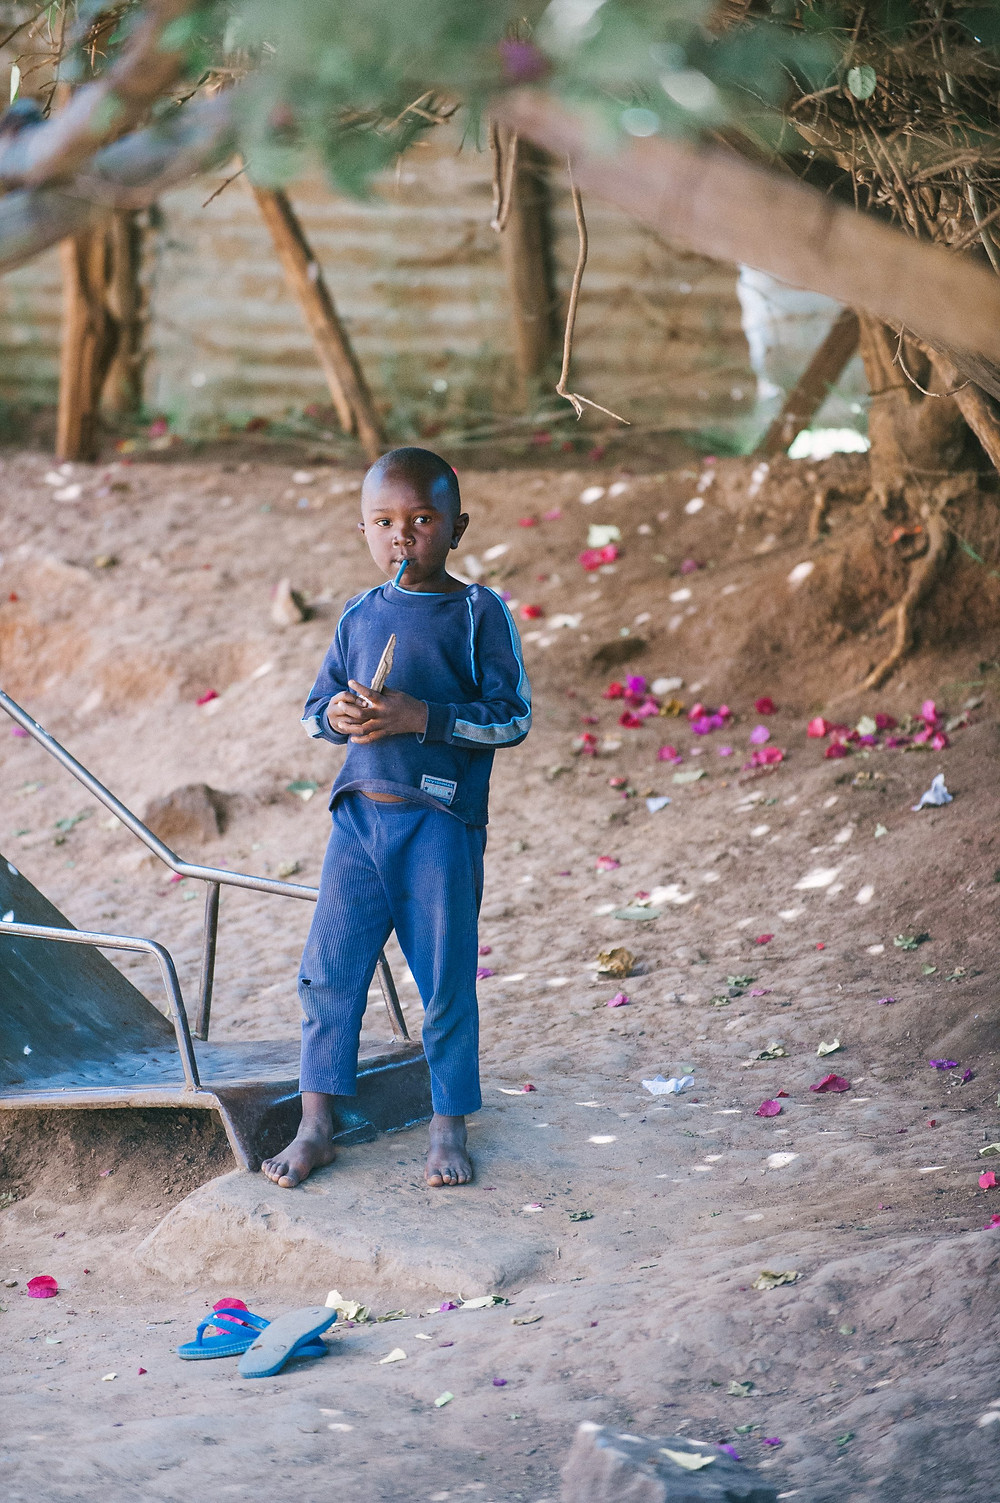 A boy plays with a piece of wood in the Dandora slums of Nairobi, Kenya. There are reportedly 2.5 million slum dwellers in about 200 settlements in Nairobi. (Photo by IMB)